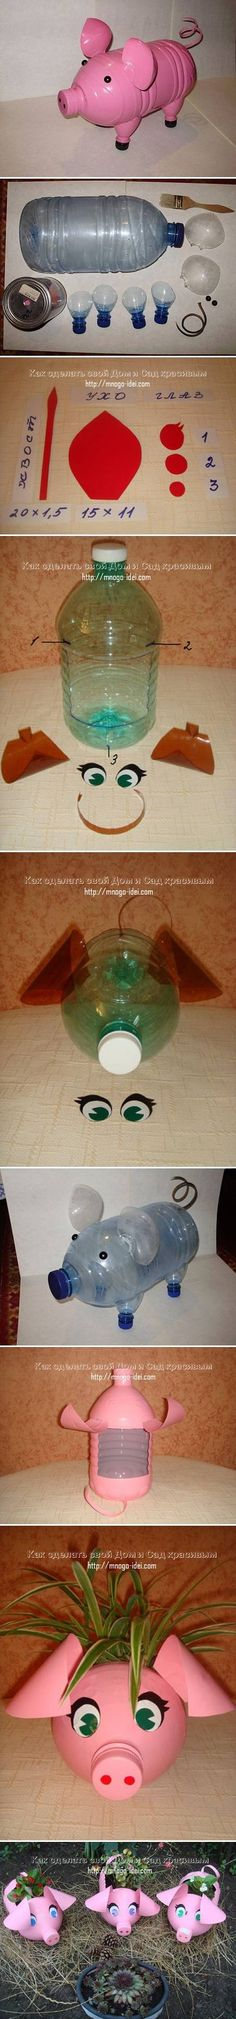 DIY Plastic Bottle Piggy Plant Vase